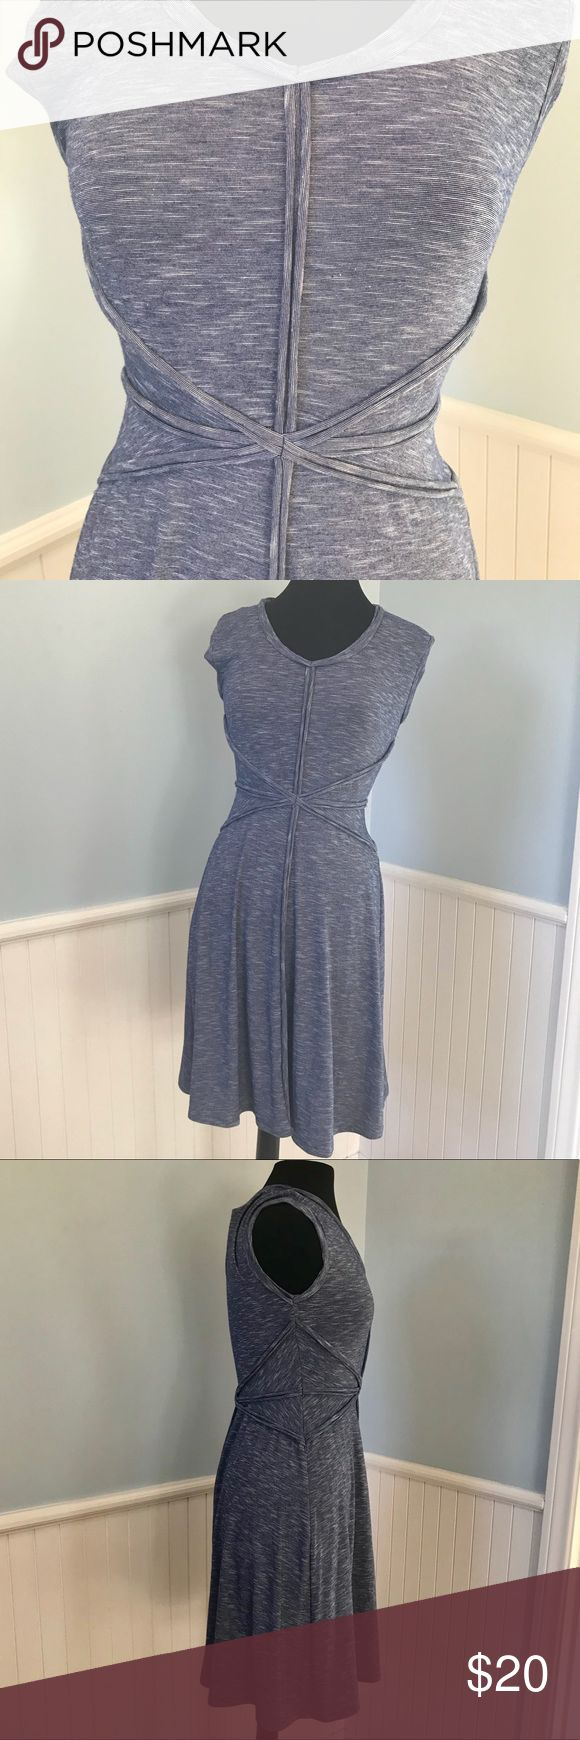 Weekend Sale Chelsea & Theodore Swing Dress Chelsea & Theodore Blue/White Swing Dress Sz Small - Swing dress style with slight a line skirt  - super flattery fabric and cut - blue/white stripe pattern  - perfect for a summer beach day, cruise, baby shower. Super versatile dress! Chelsea & Theodore Dresses